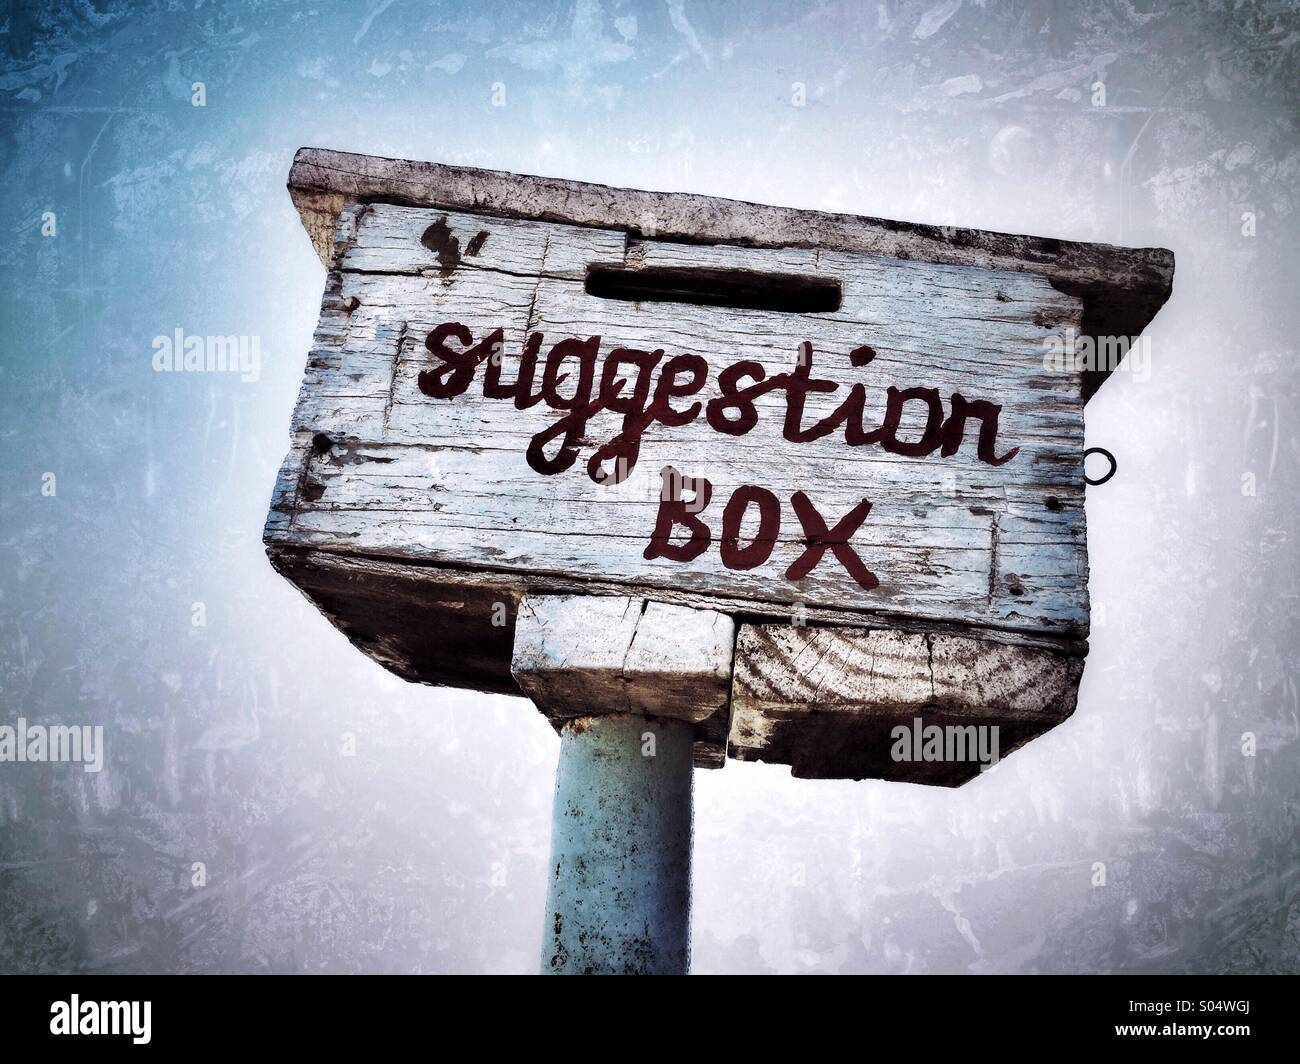 Suggestion box outside a rural school in Zimbabwe. - Stock Image